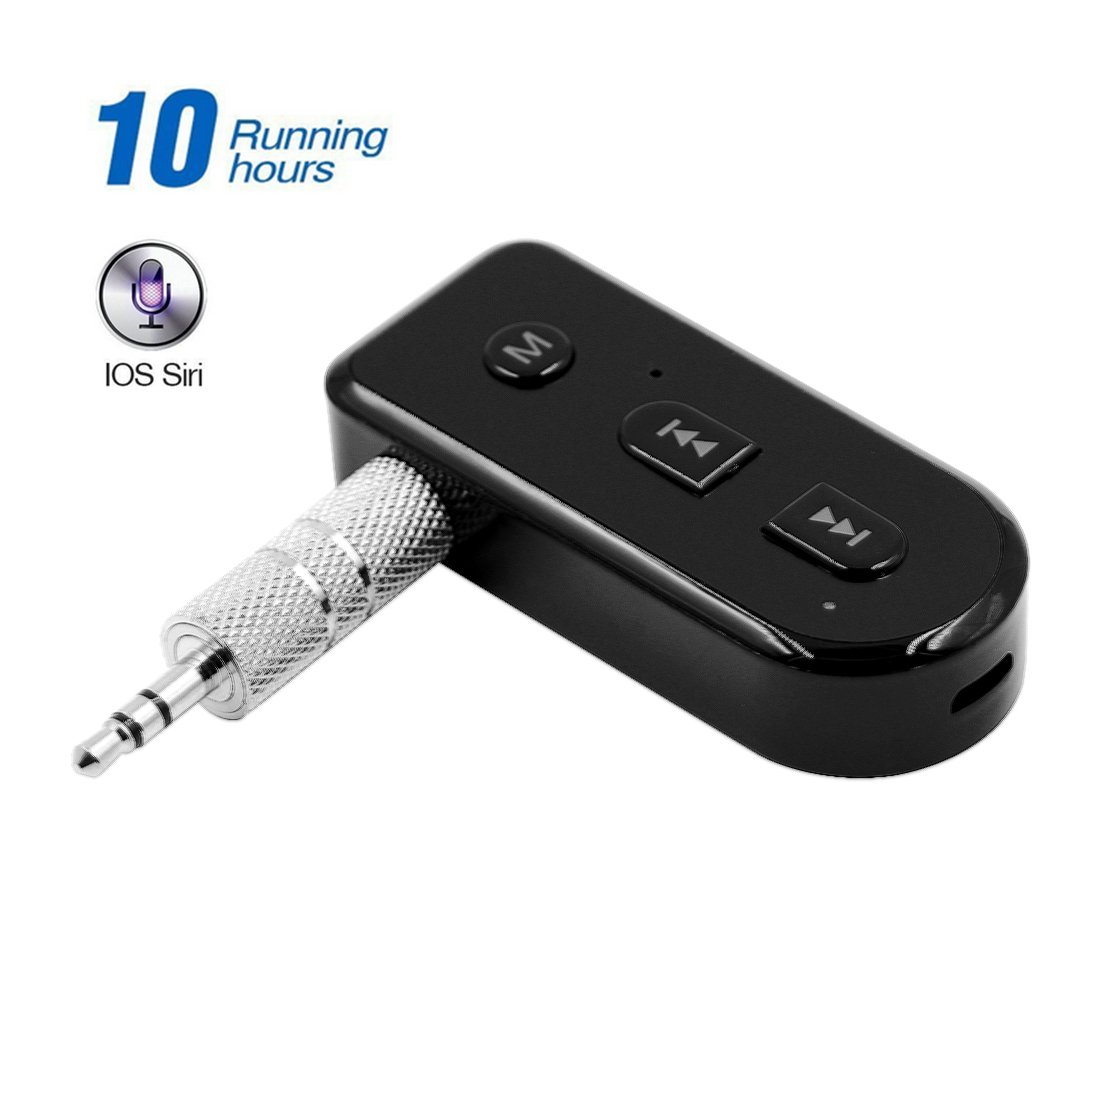 YELLWWORS Bluetooth Receiver, Hands-Free Car Kit [Built-in Microphone], Mini Wireless Music Adapter for Home/Car Audio System, Siri Function